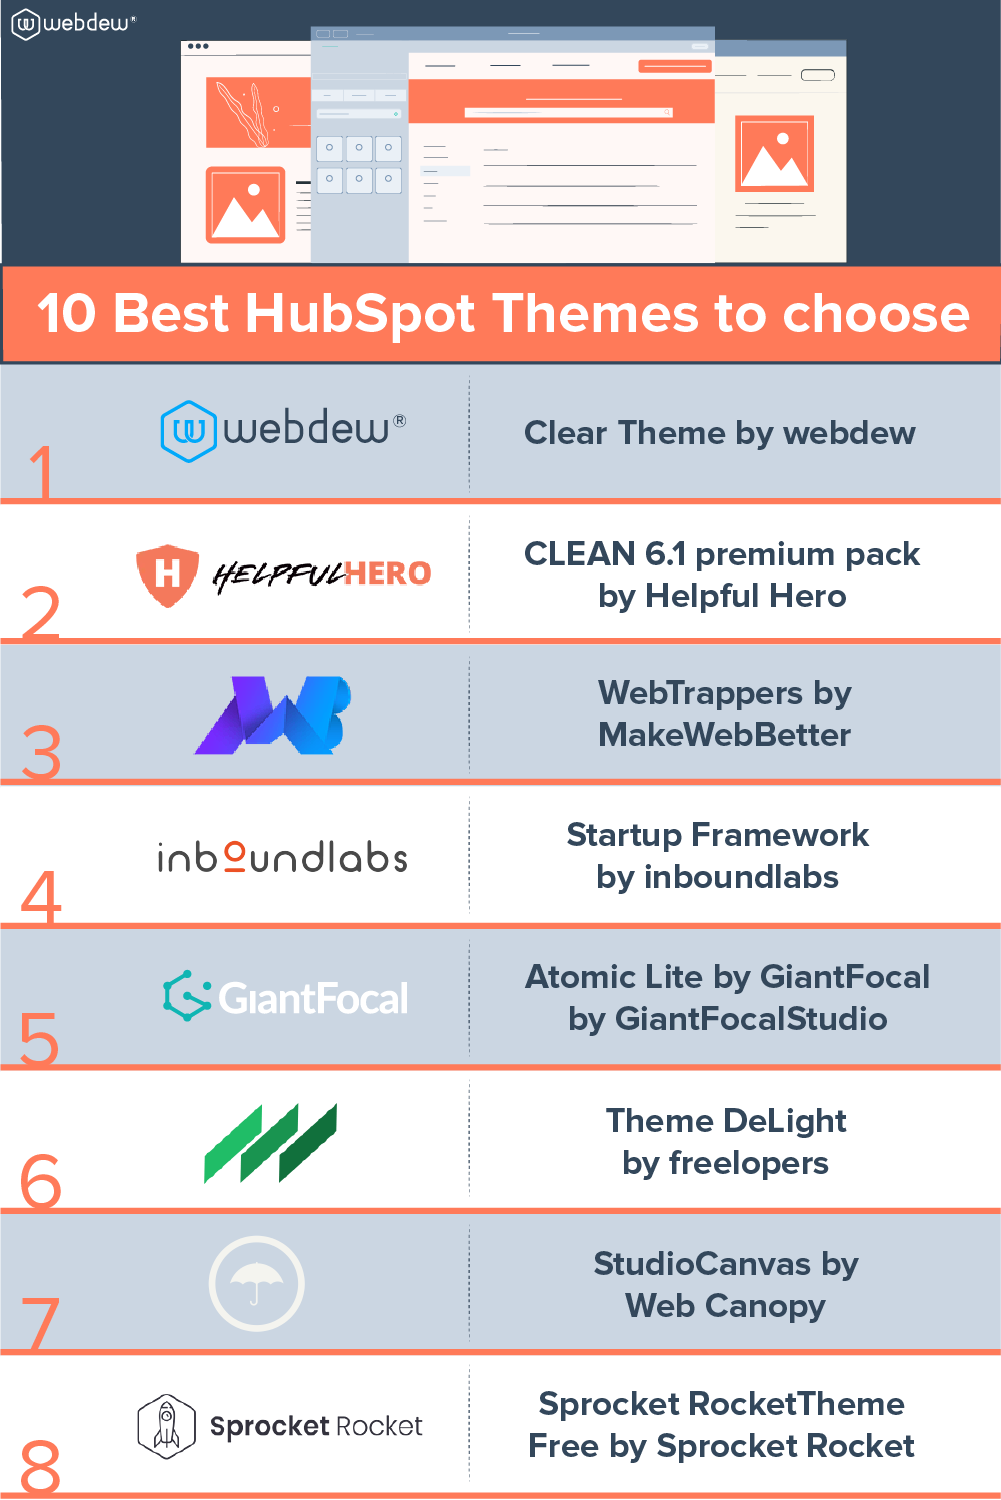 10-best-hubspot-themes-to-choose-from